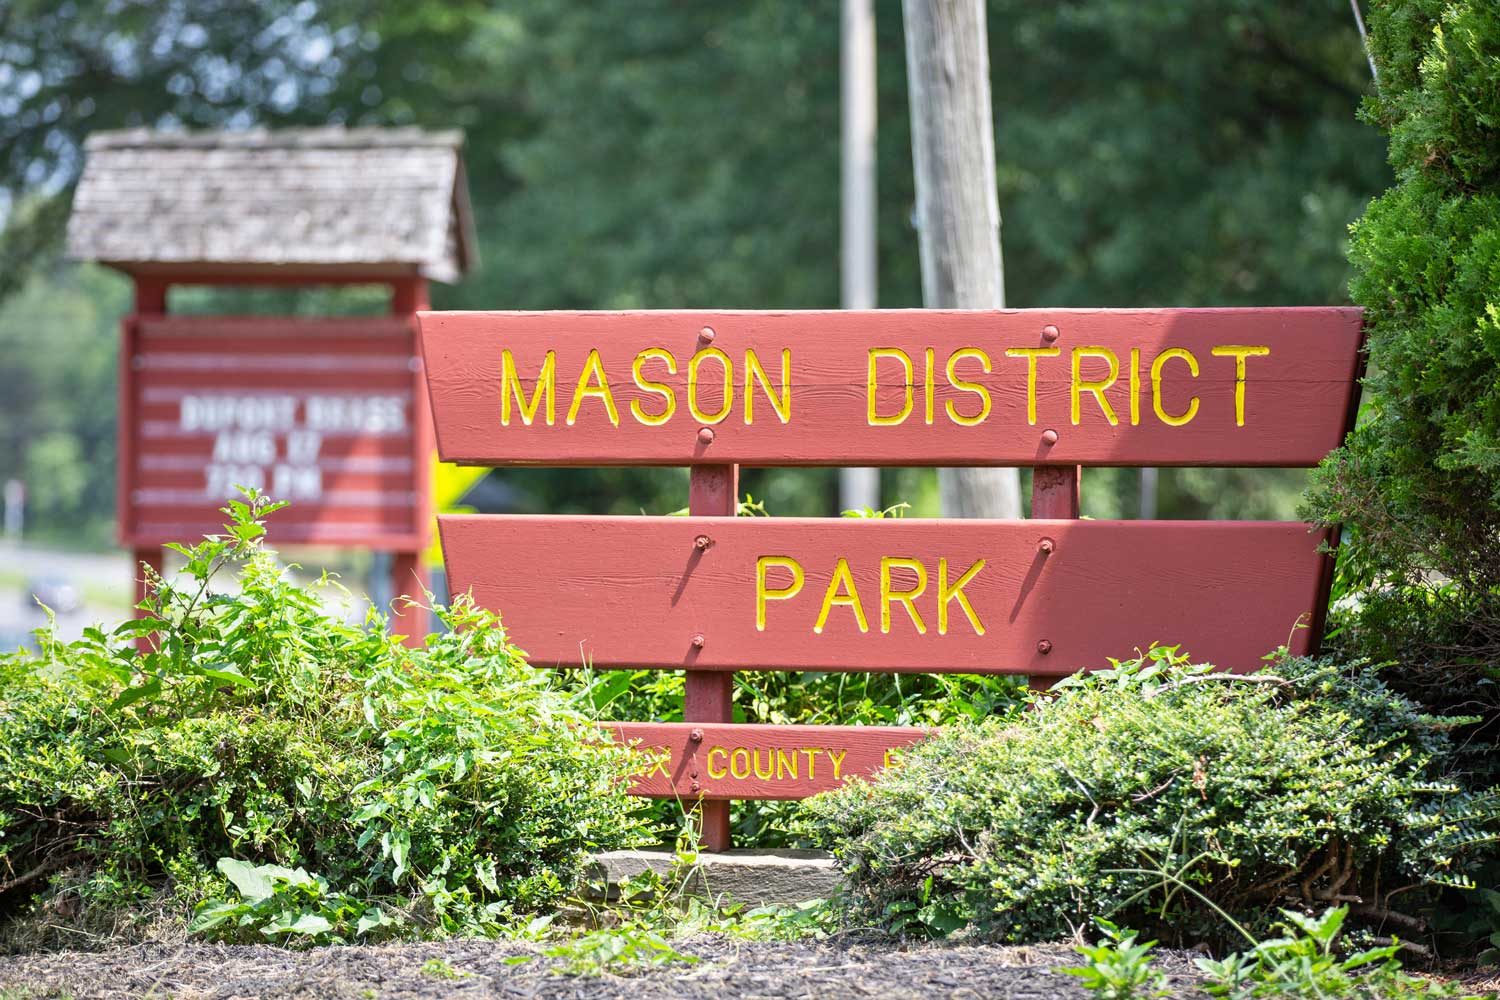 Mason District Park is 5 minutes from Barcroft View Apartments in Falls Church, VA